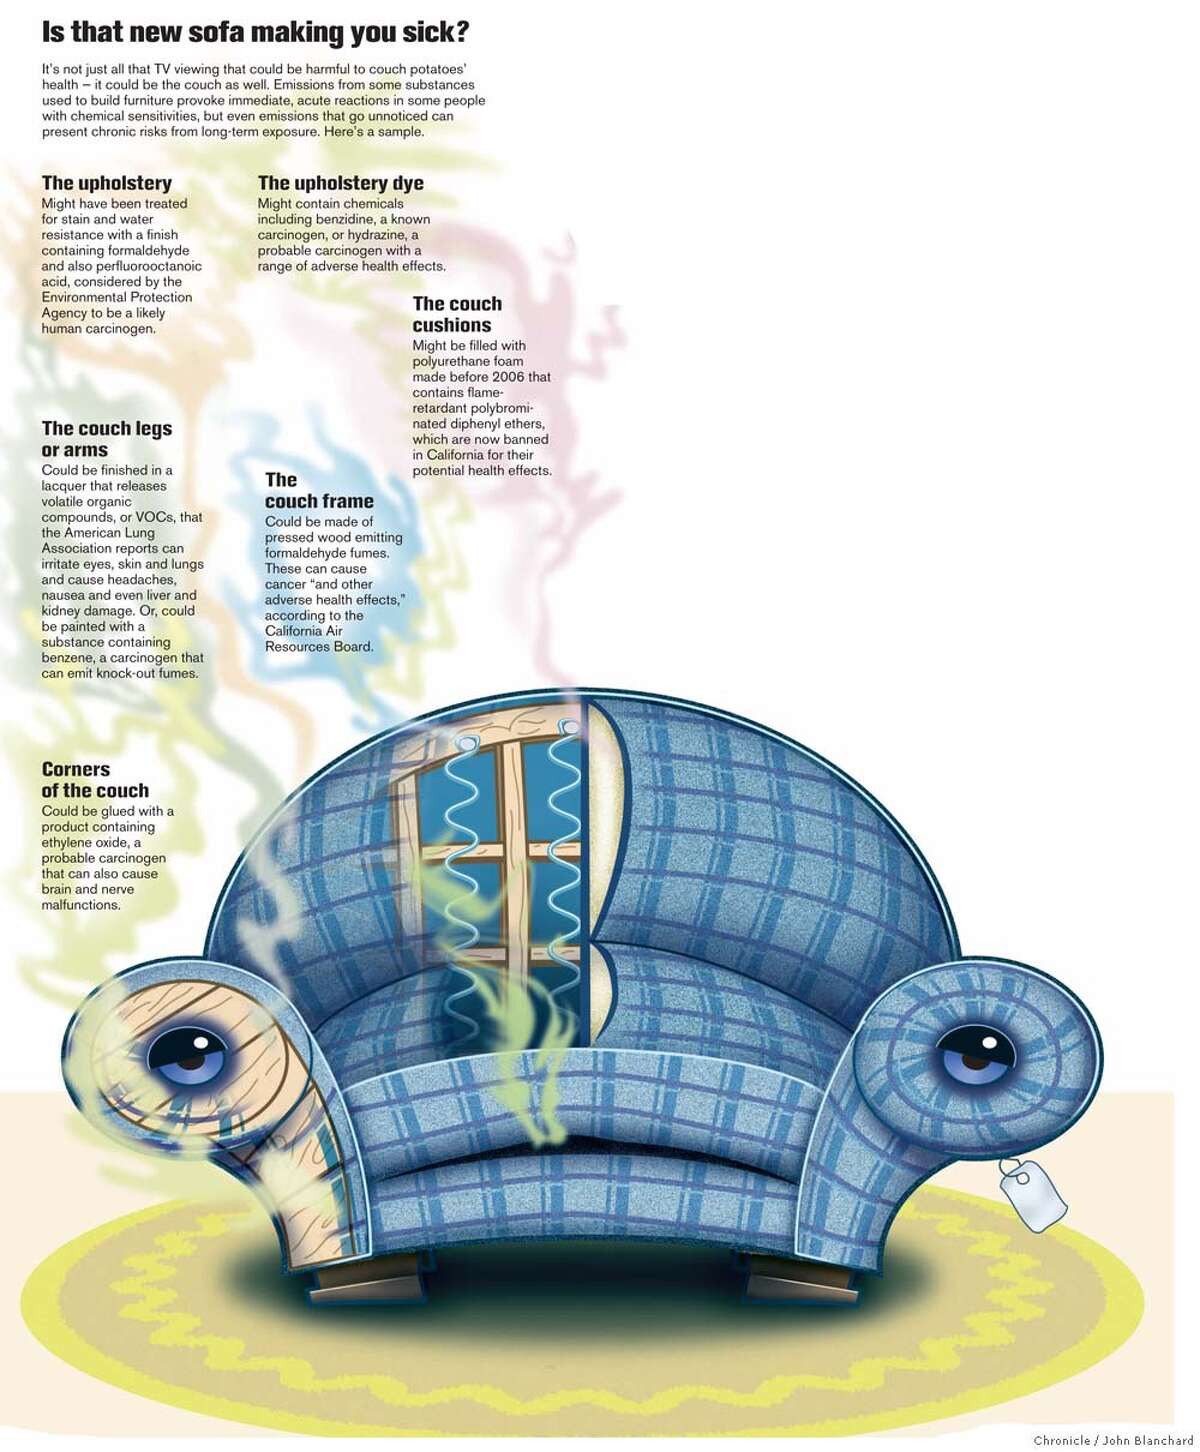 Is That New Sofa Making You Sick? Chronicle illustration by John Blanchard